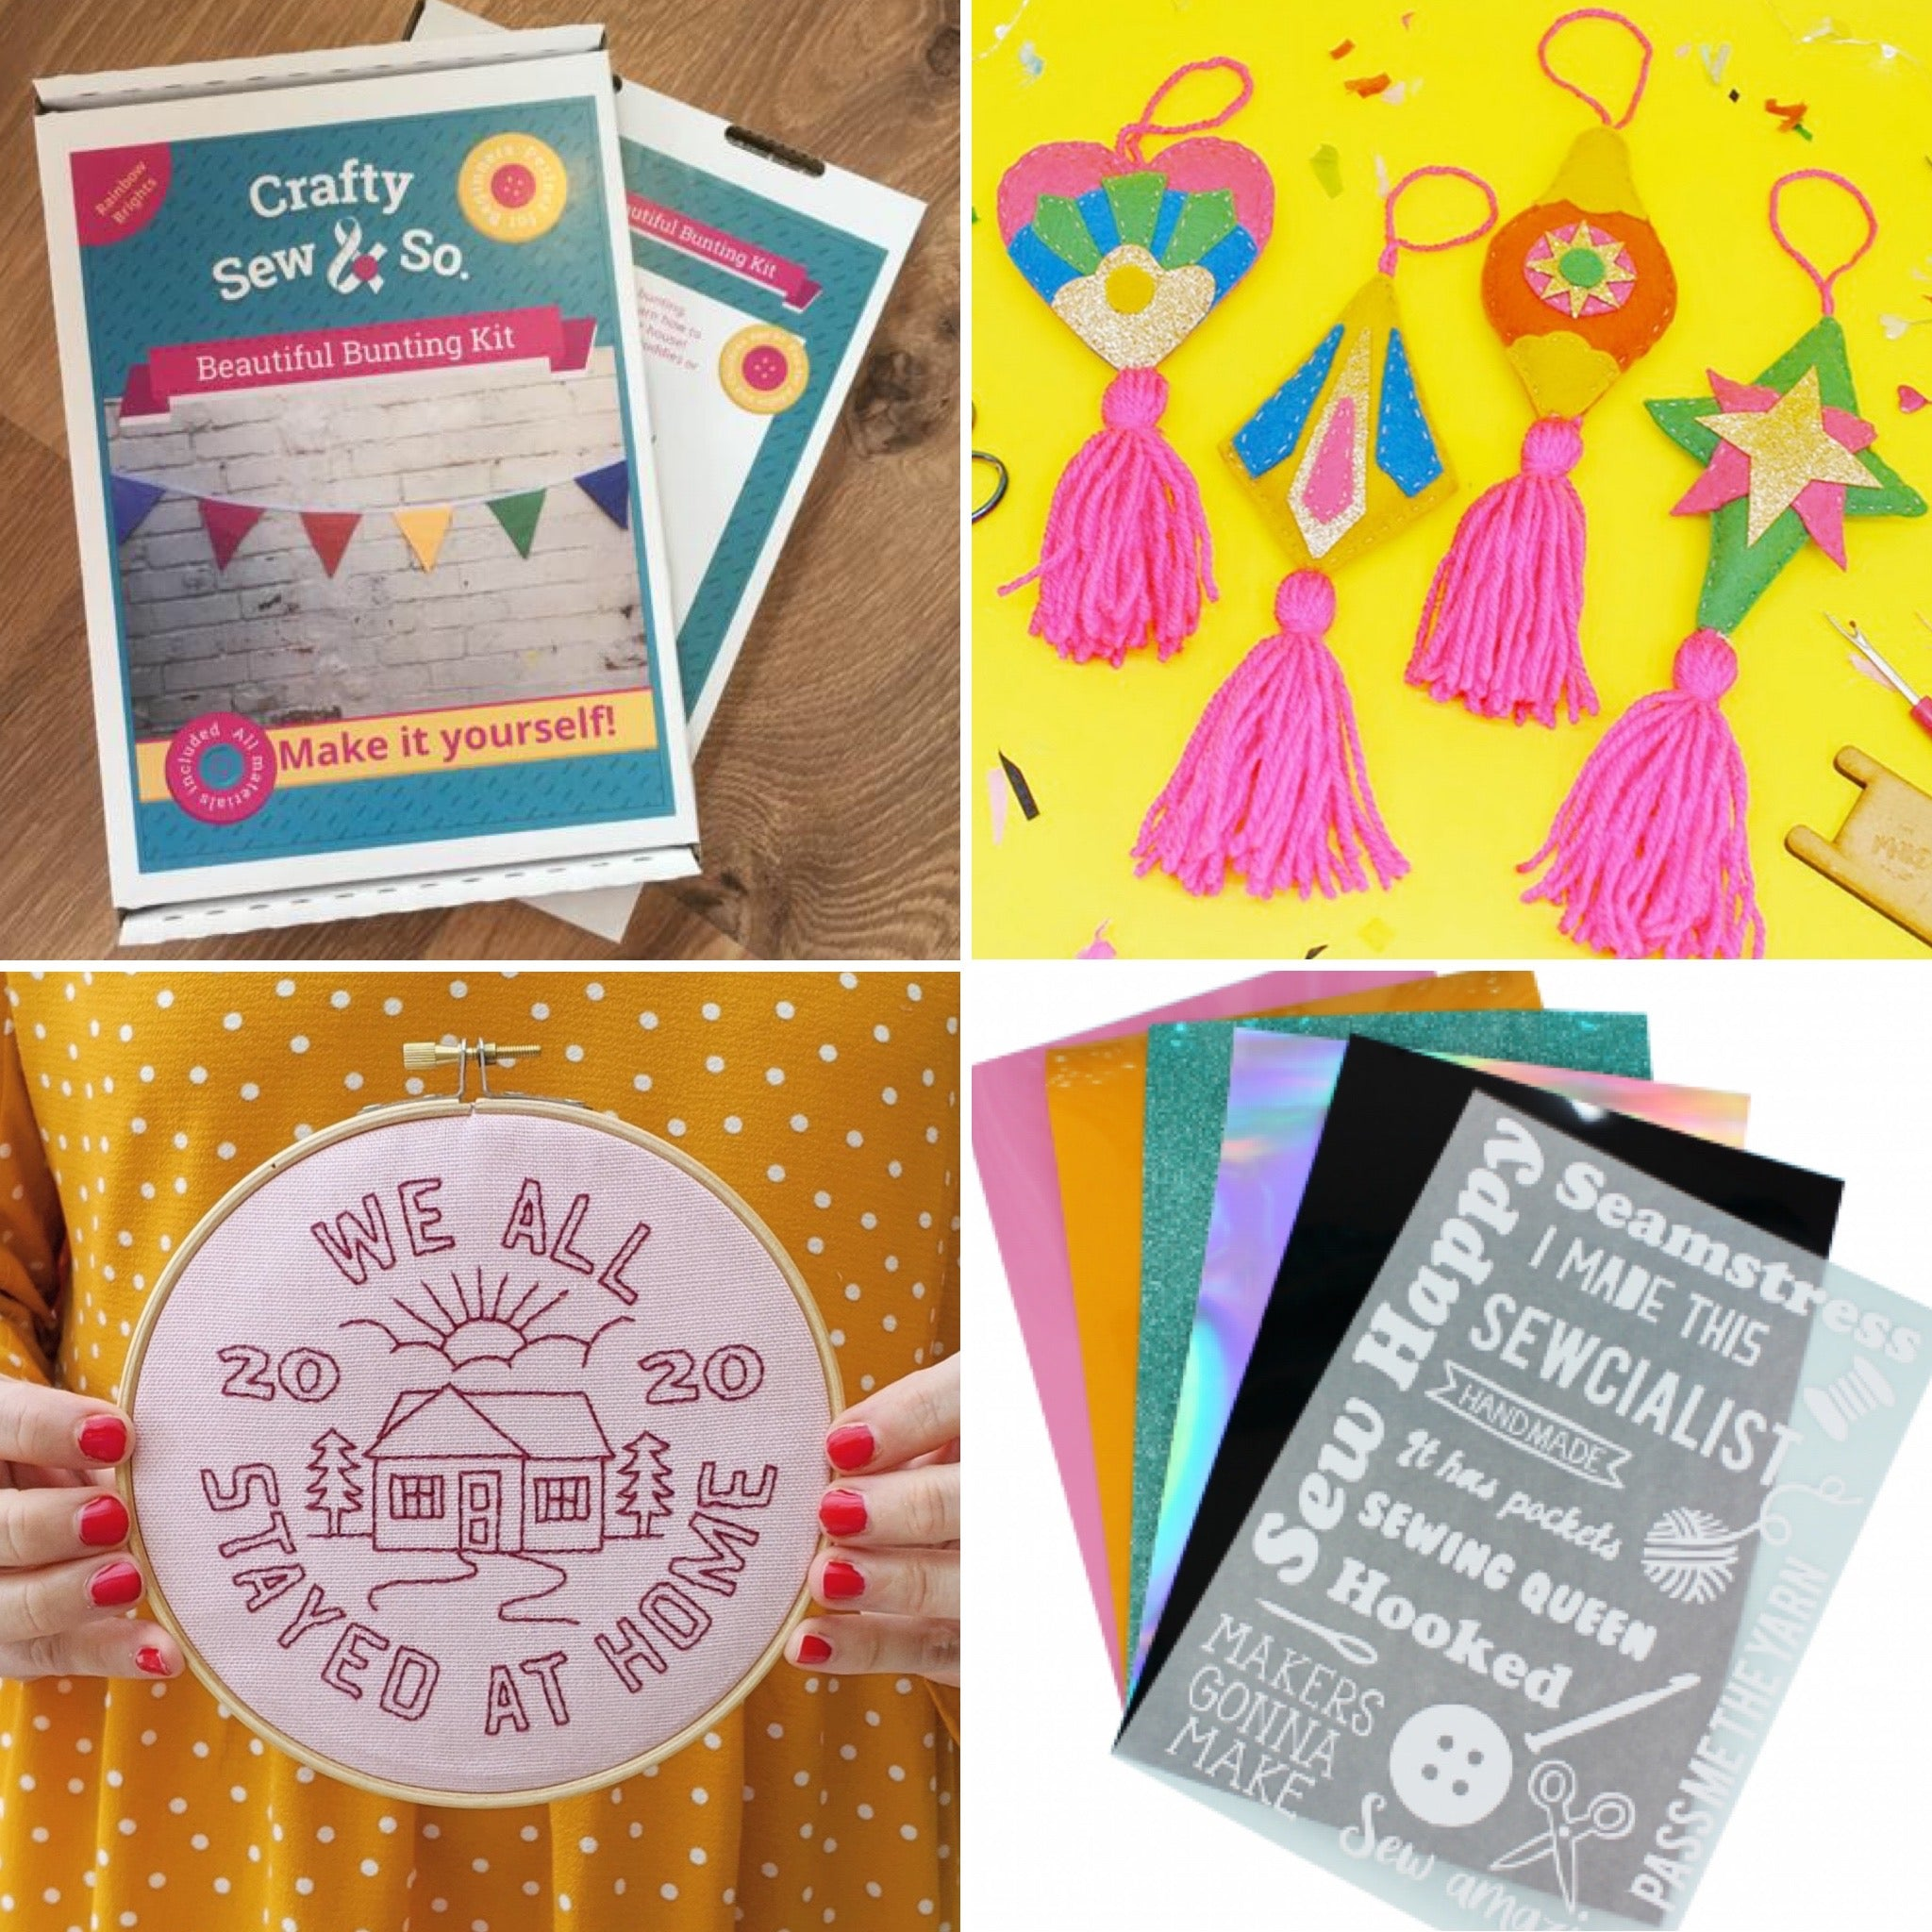 Sewing kits gift guide